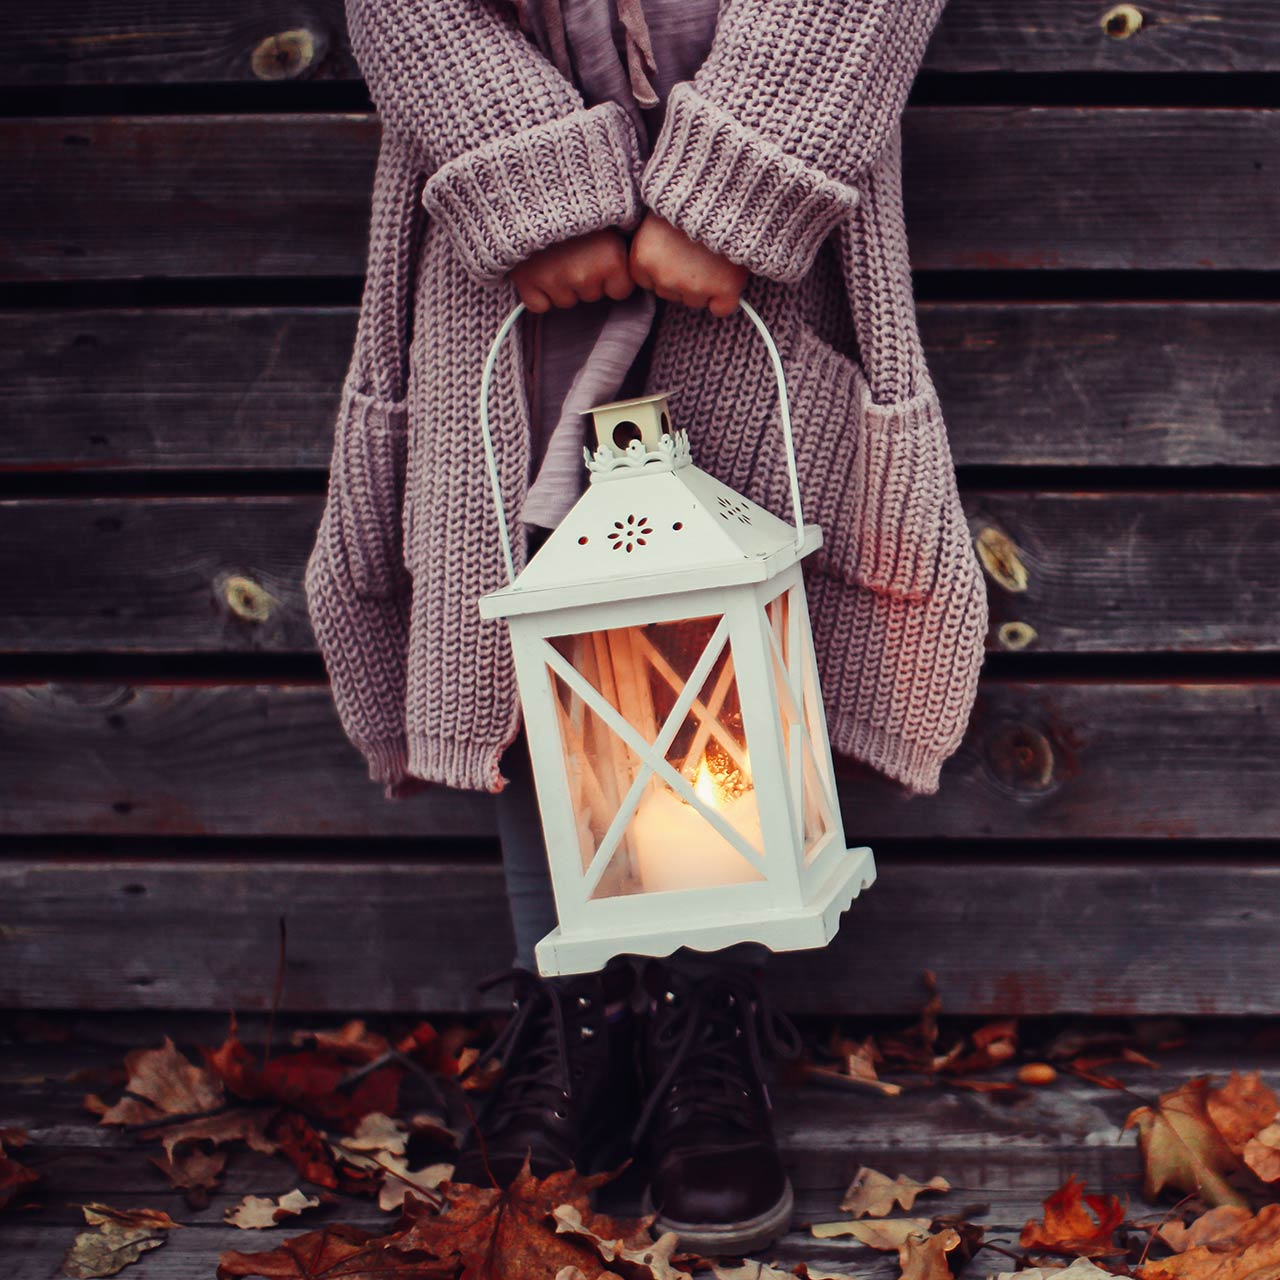 girl standing in front of a wooden home wearing a vintage pink oversized wool jumper and holding a white lantern with a burning candle